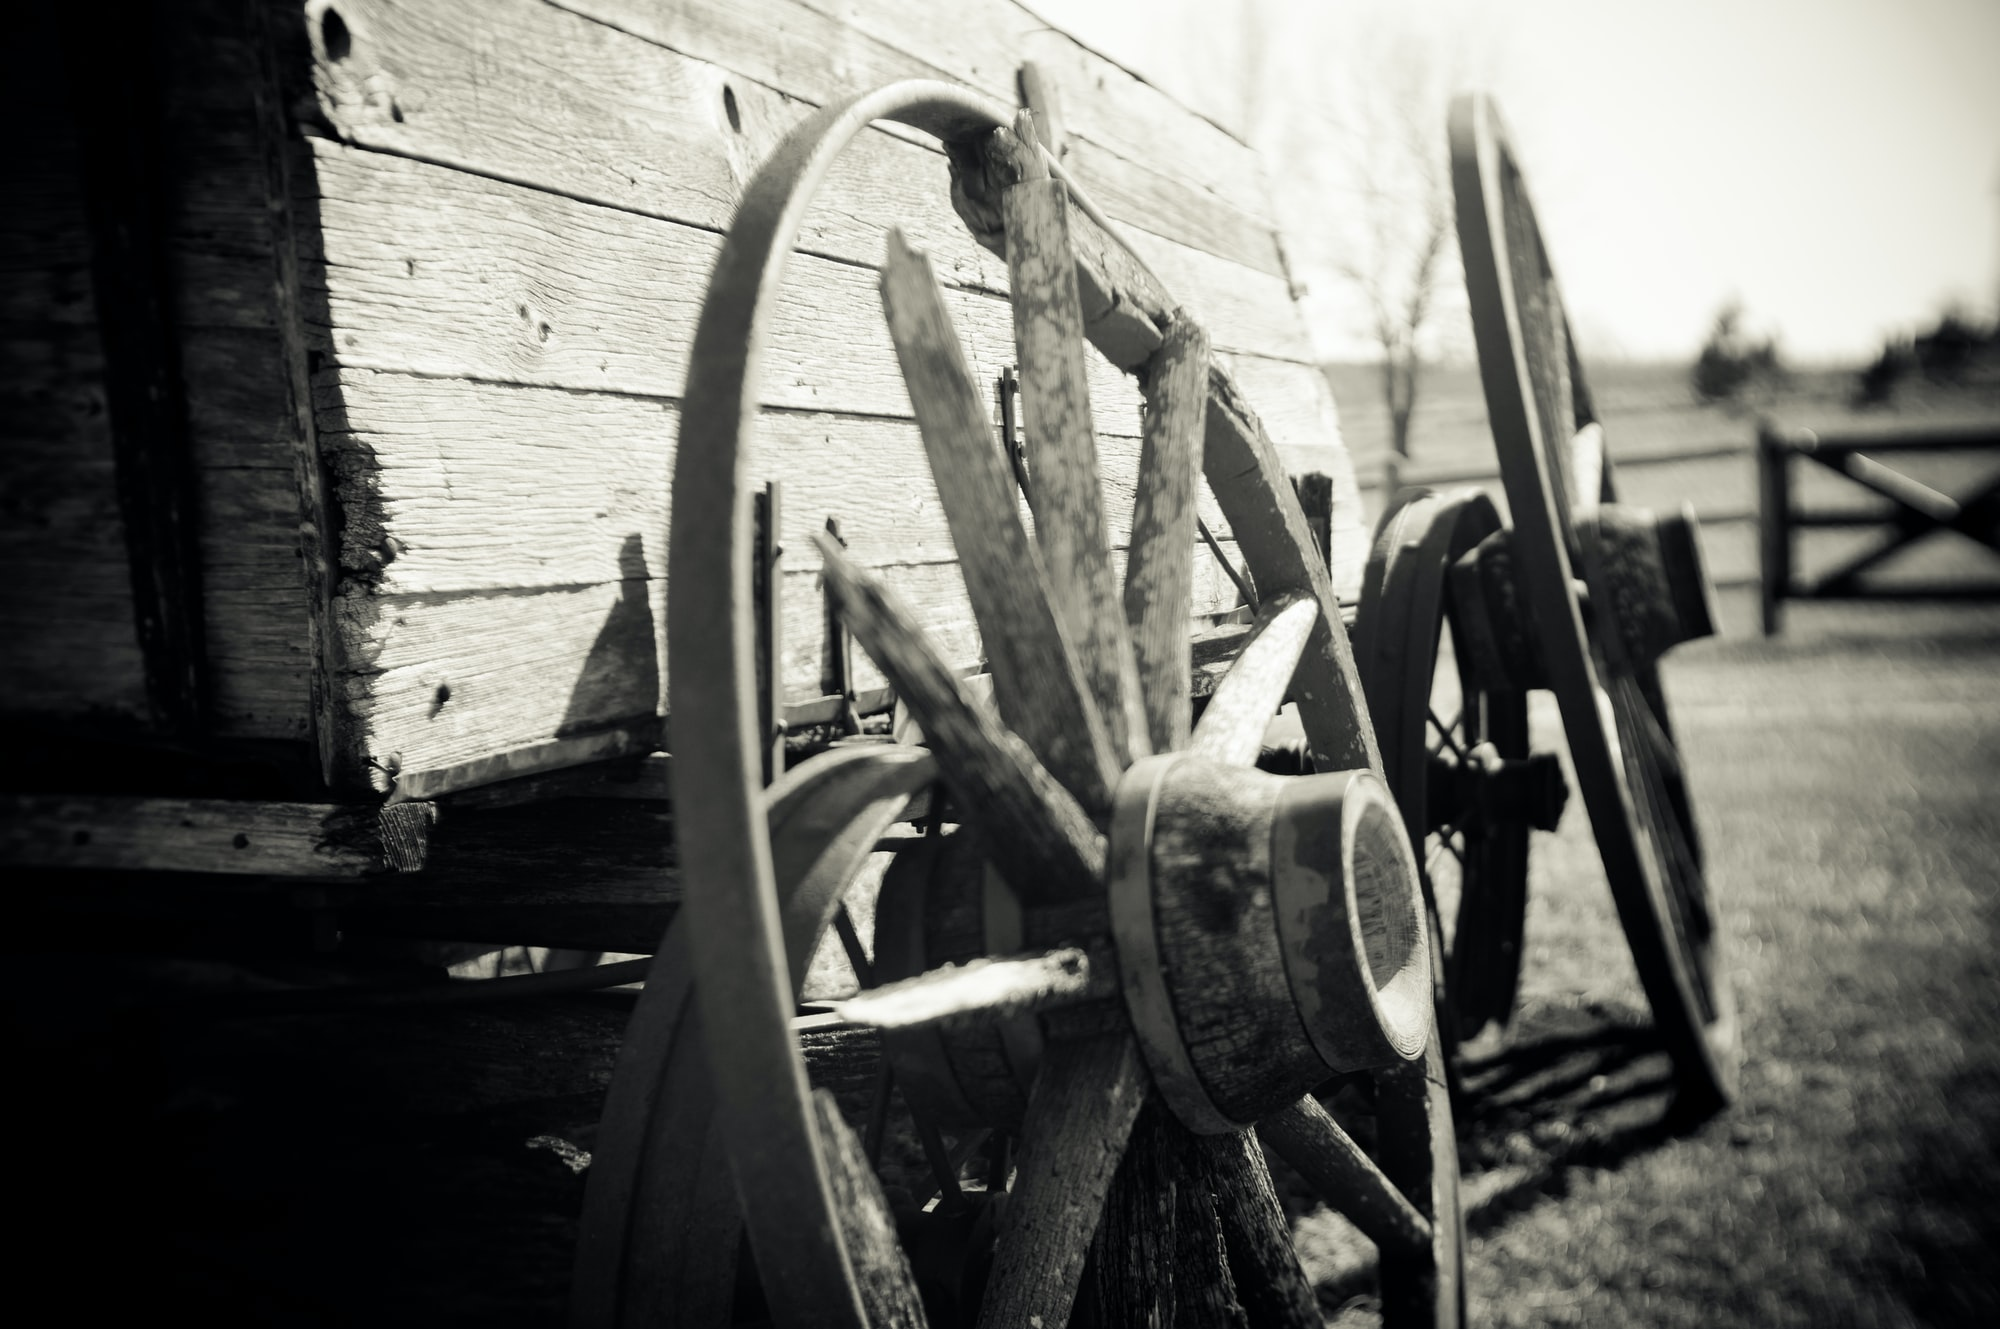 monochrome wooden wagon